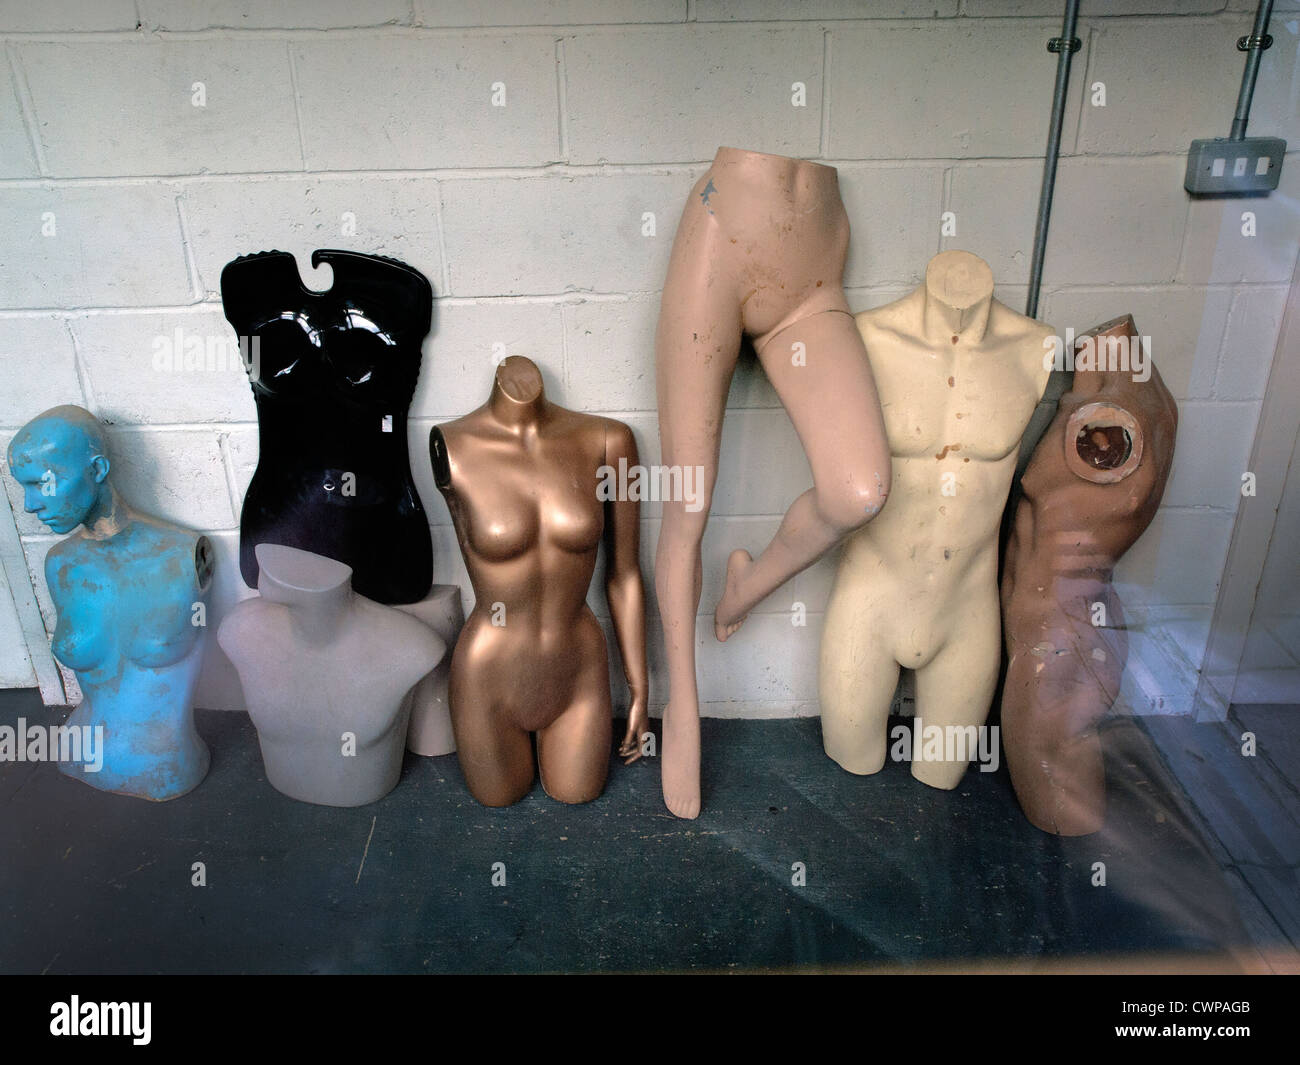 In a shop window stand a variety of mannequin body parts. - Stock Image